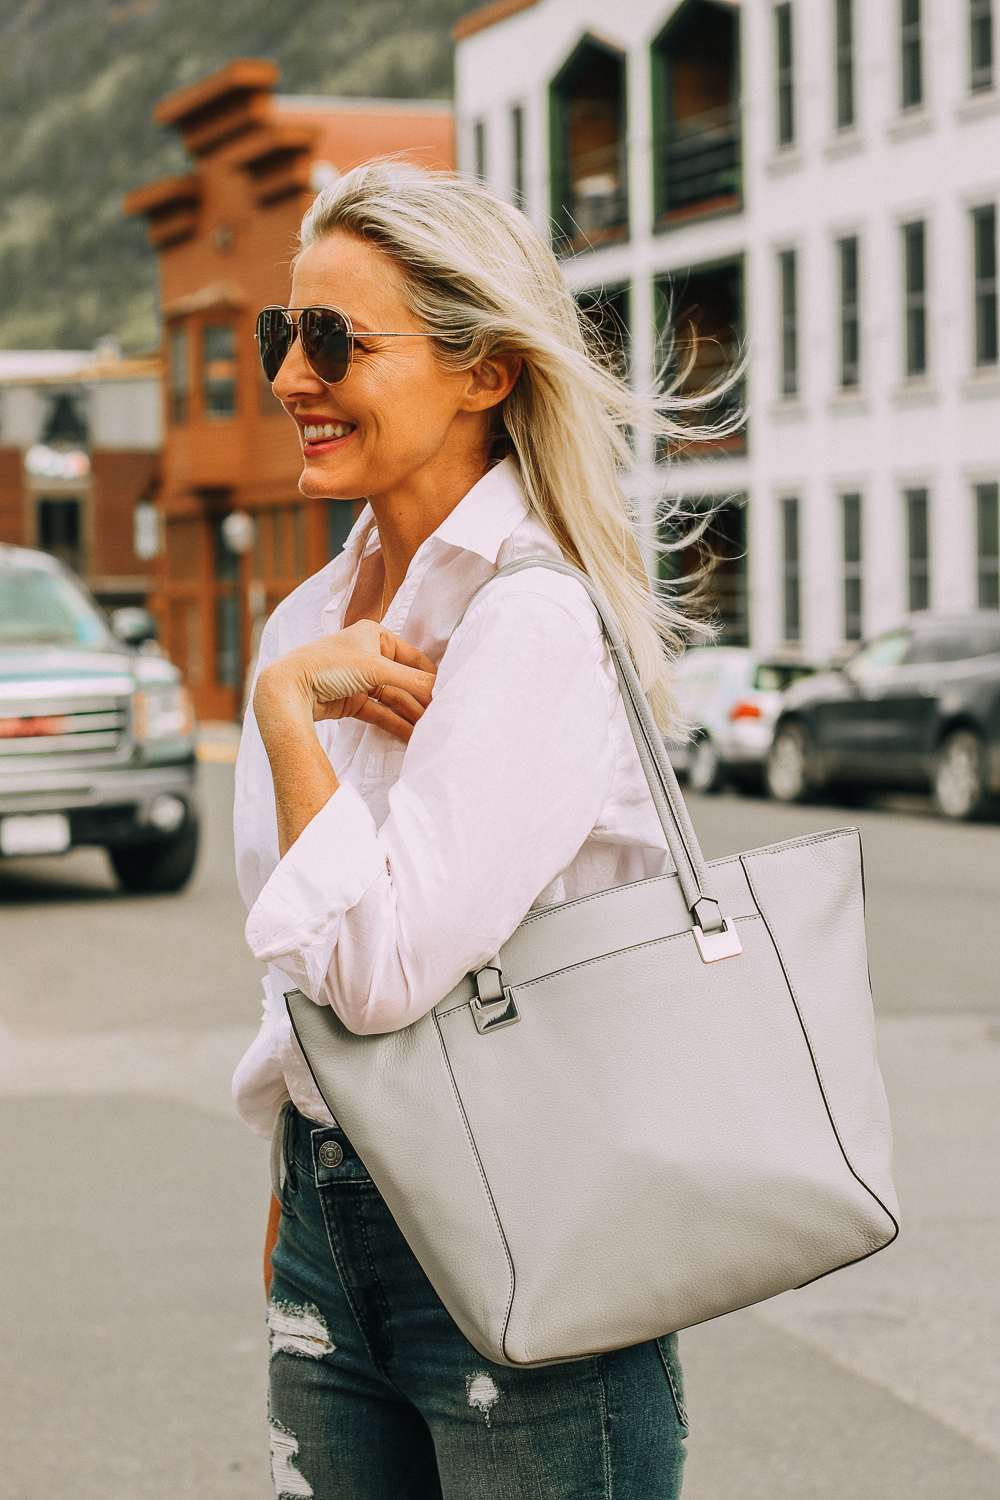 Vince Camuto gray tote bag paired with white button down frank and eileen shirt